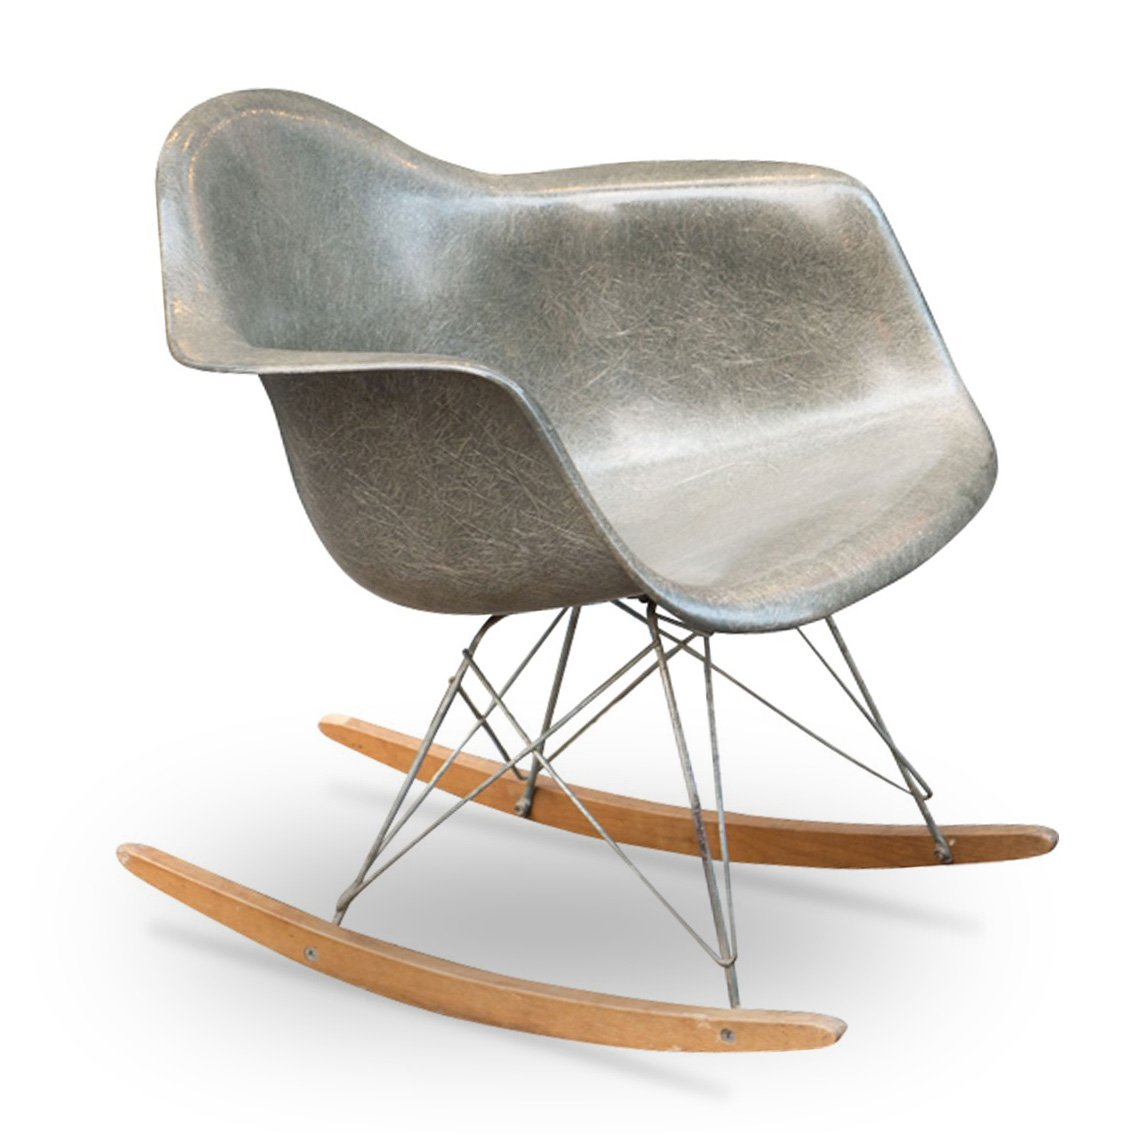 vintage rocking chair by charles ray eames for herman miller 1950s for sale at pamono. Black Bedroom Furniture Sets. Home Design Ideas